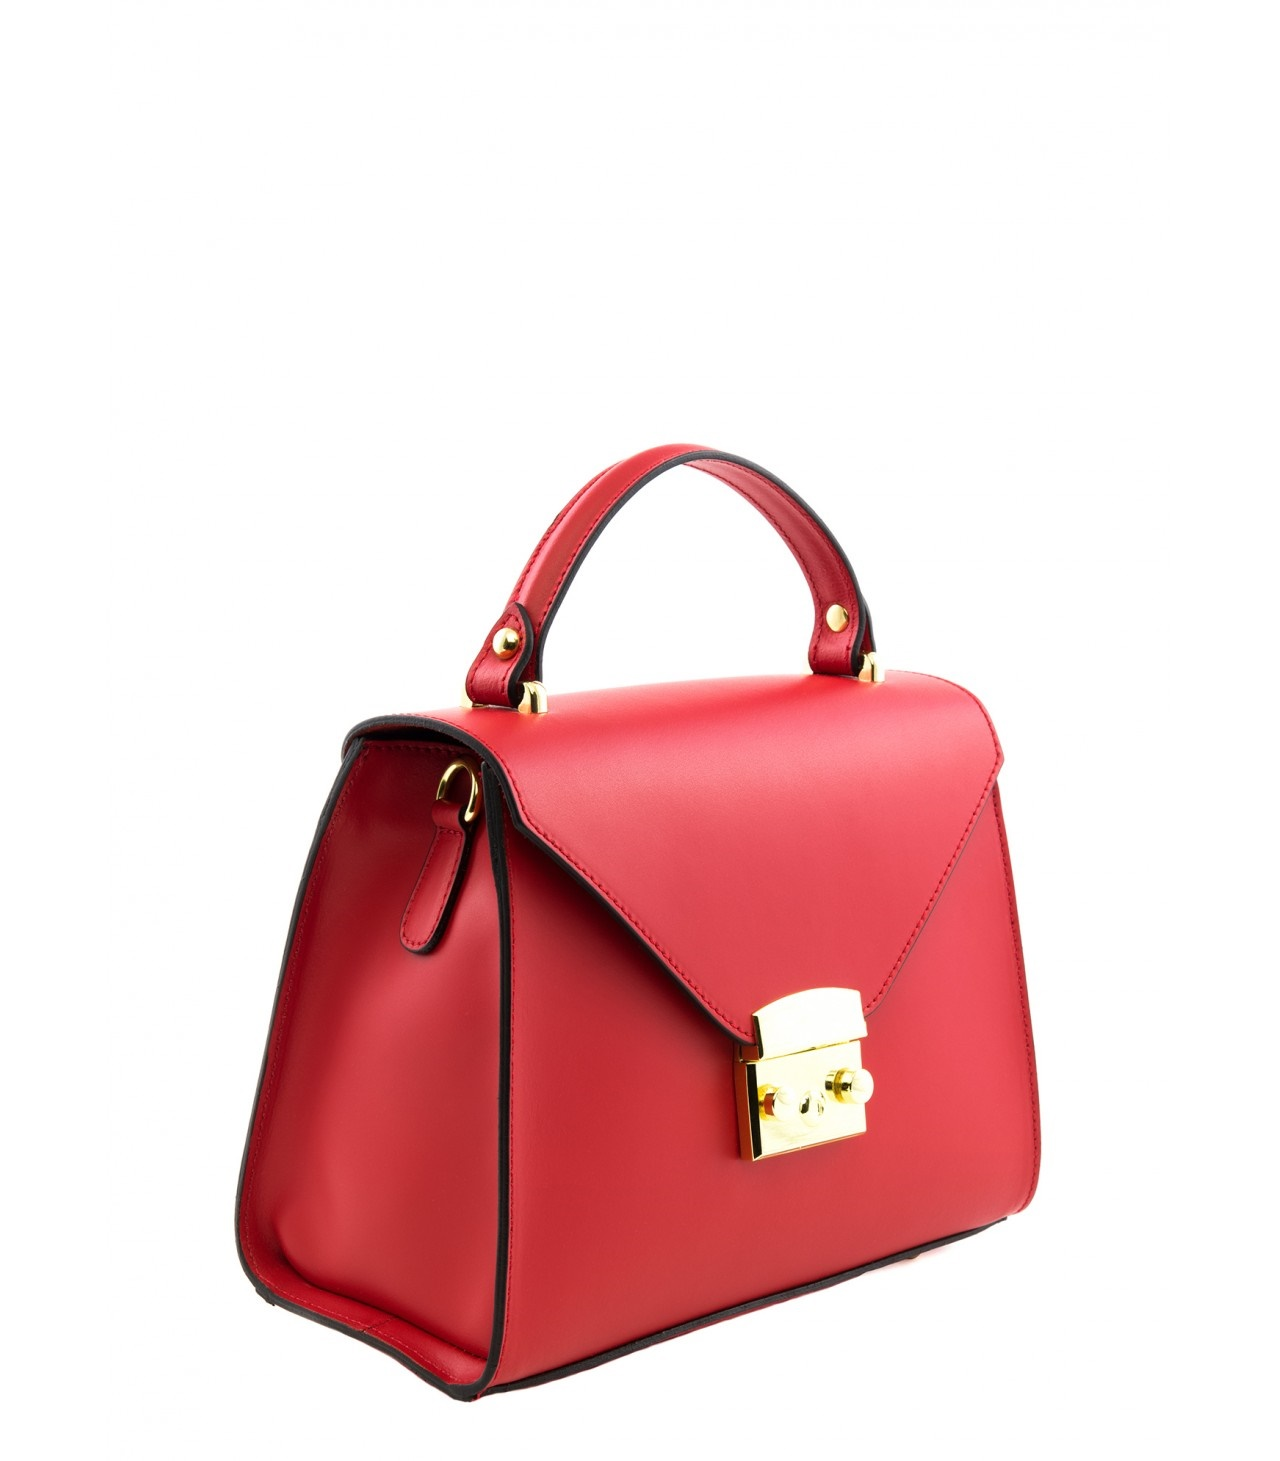 LEATHER HANDBAG BORSAMANO_0009_RO COLOR: RED